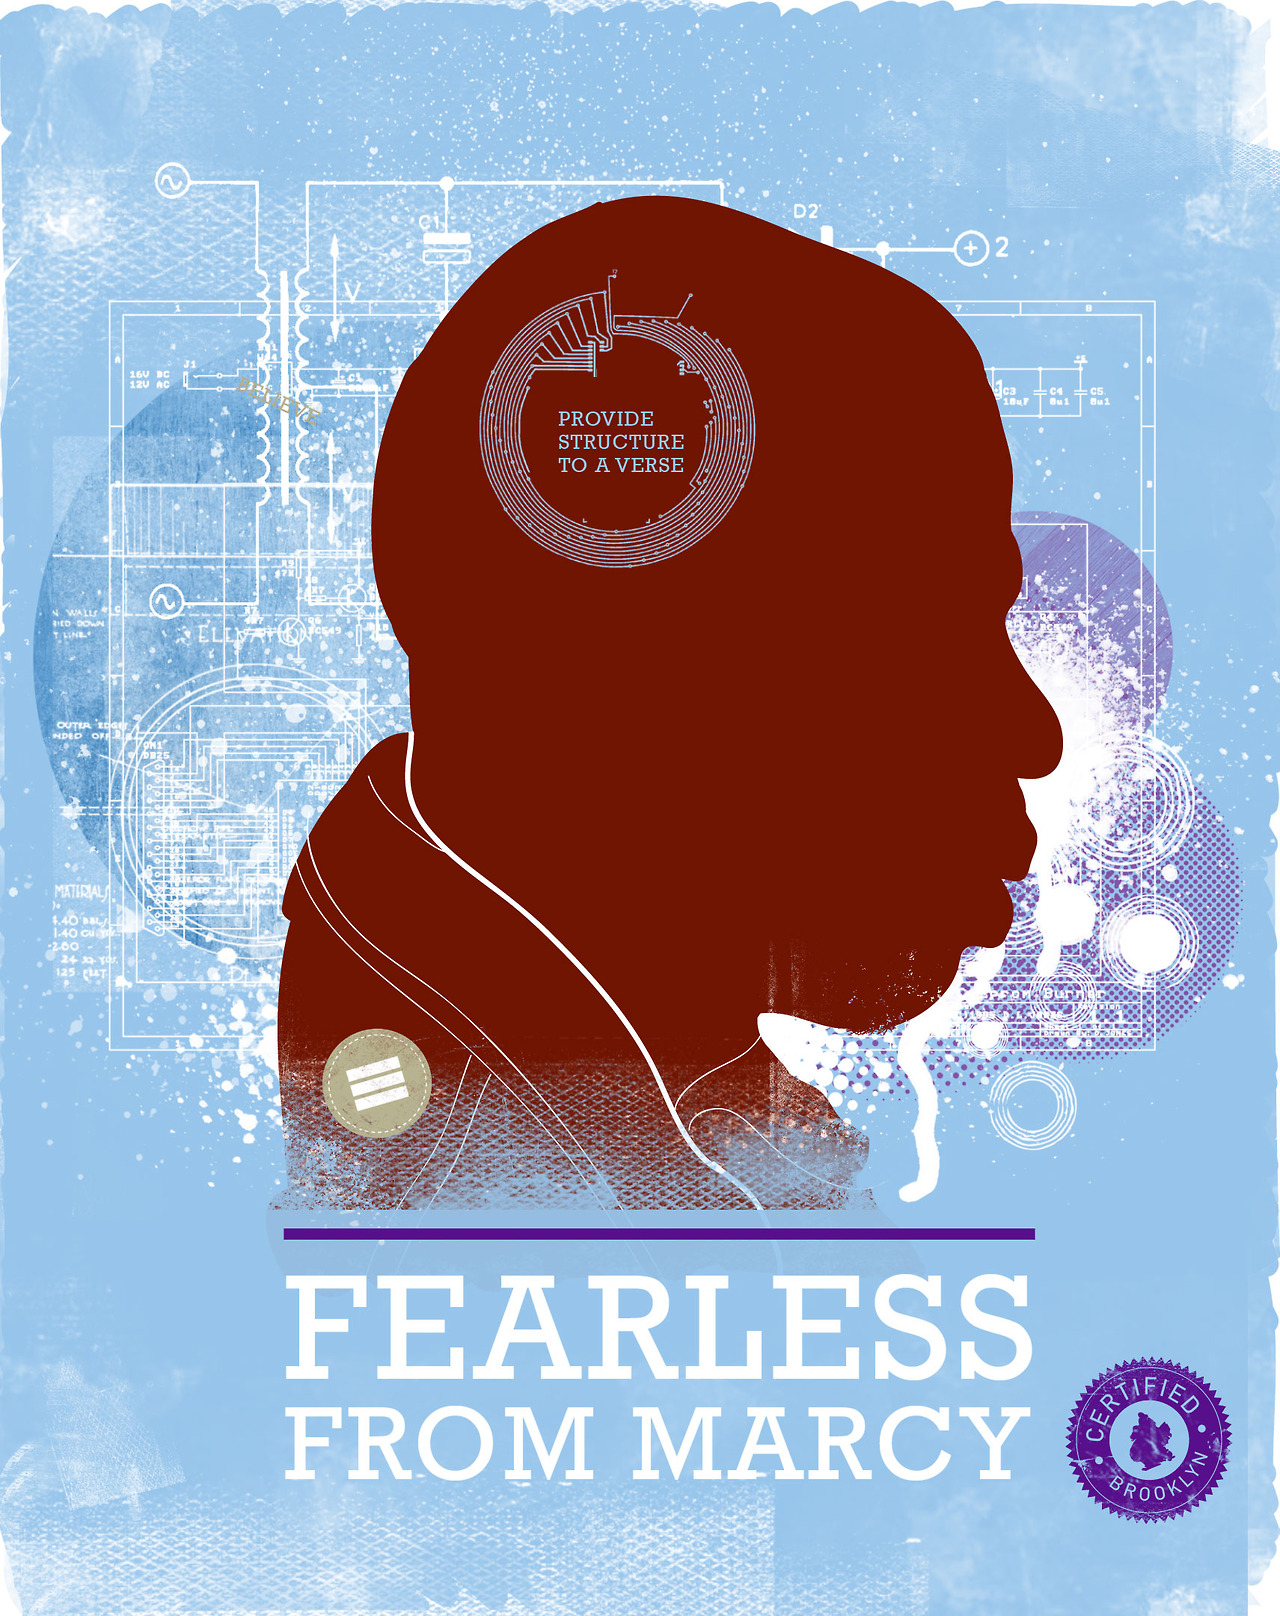 Fearless From Marcy by Adrian Franks @afranks3 - #peppersearcing #pepper #fearless #poster #blackhistory #jay-z